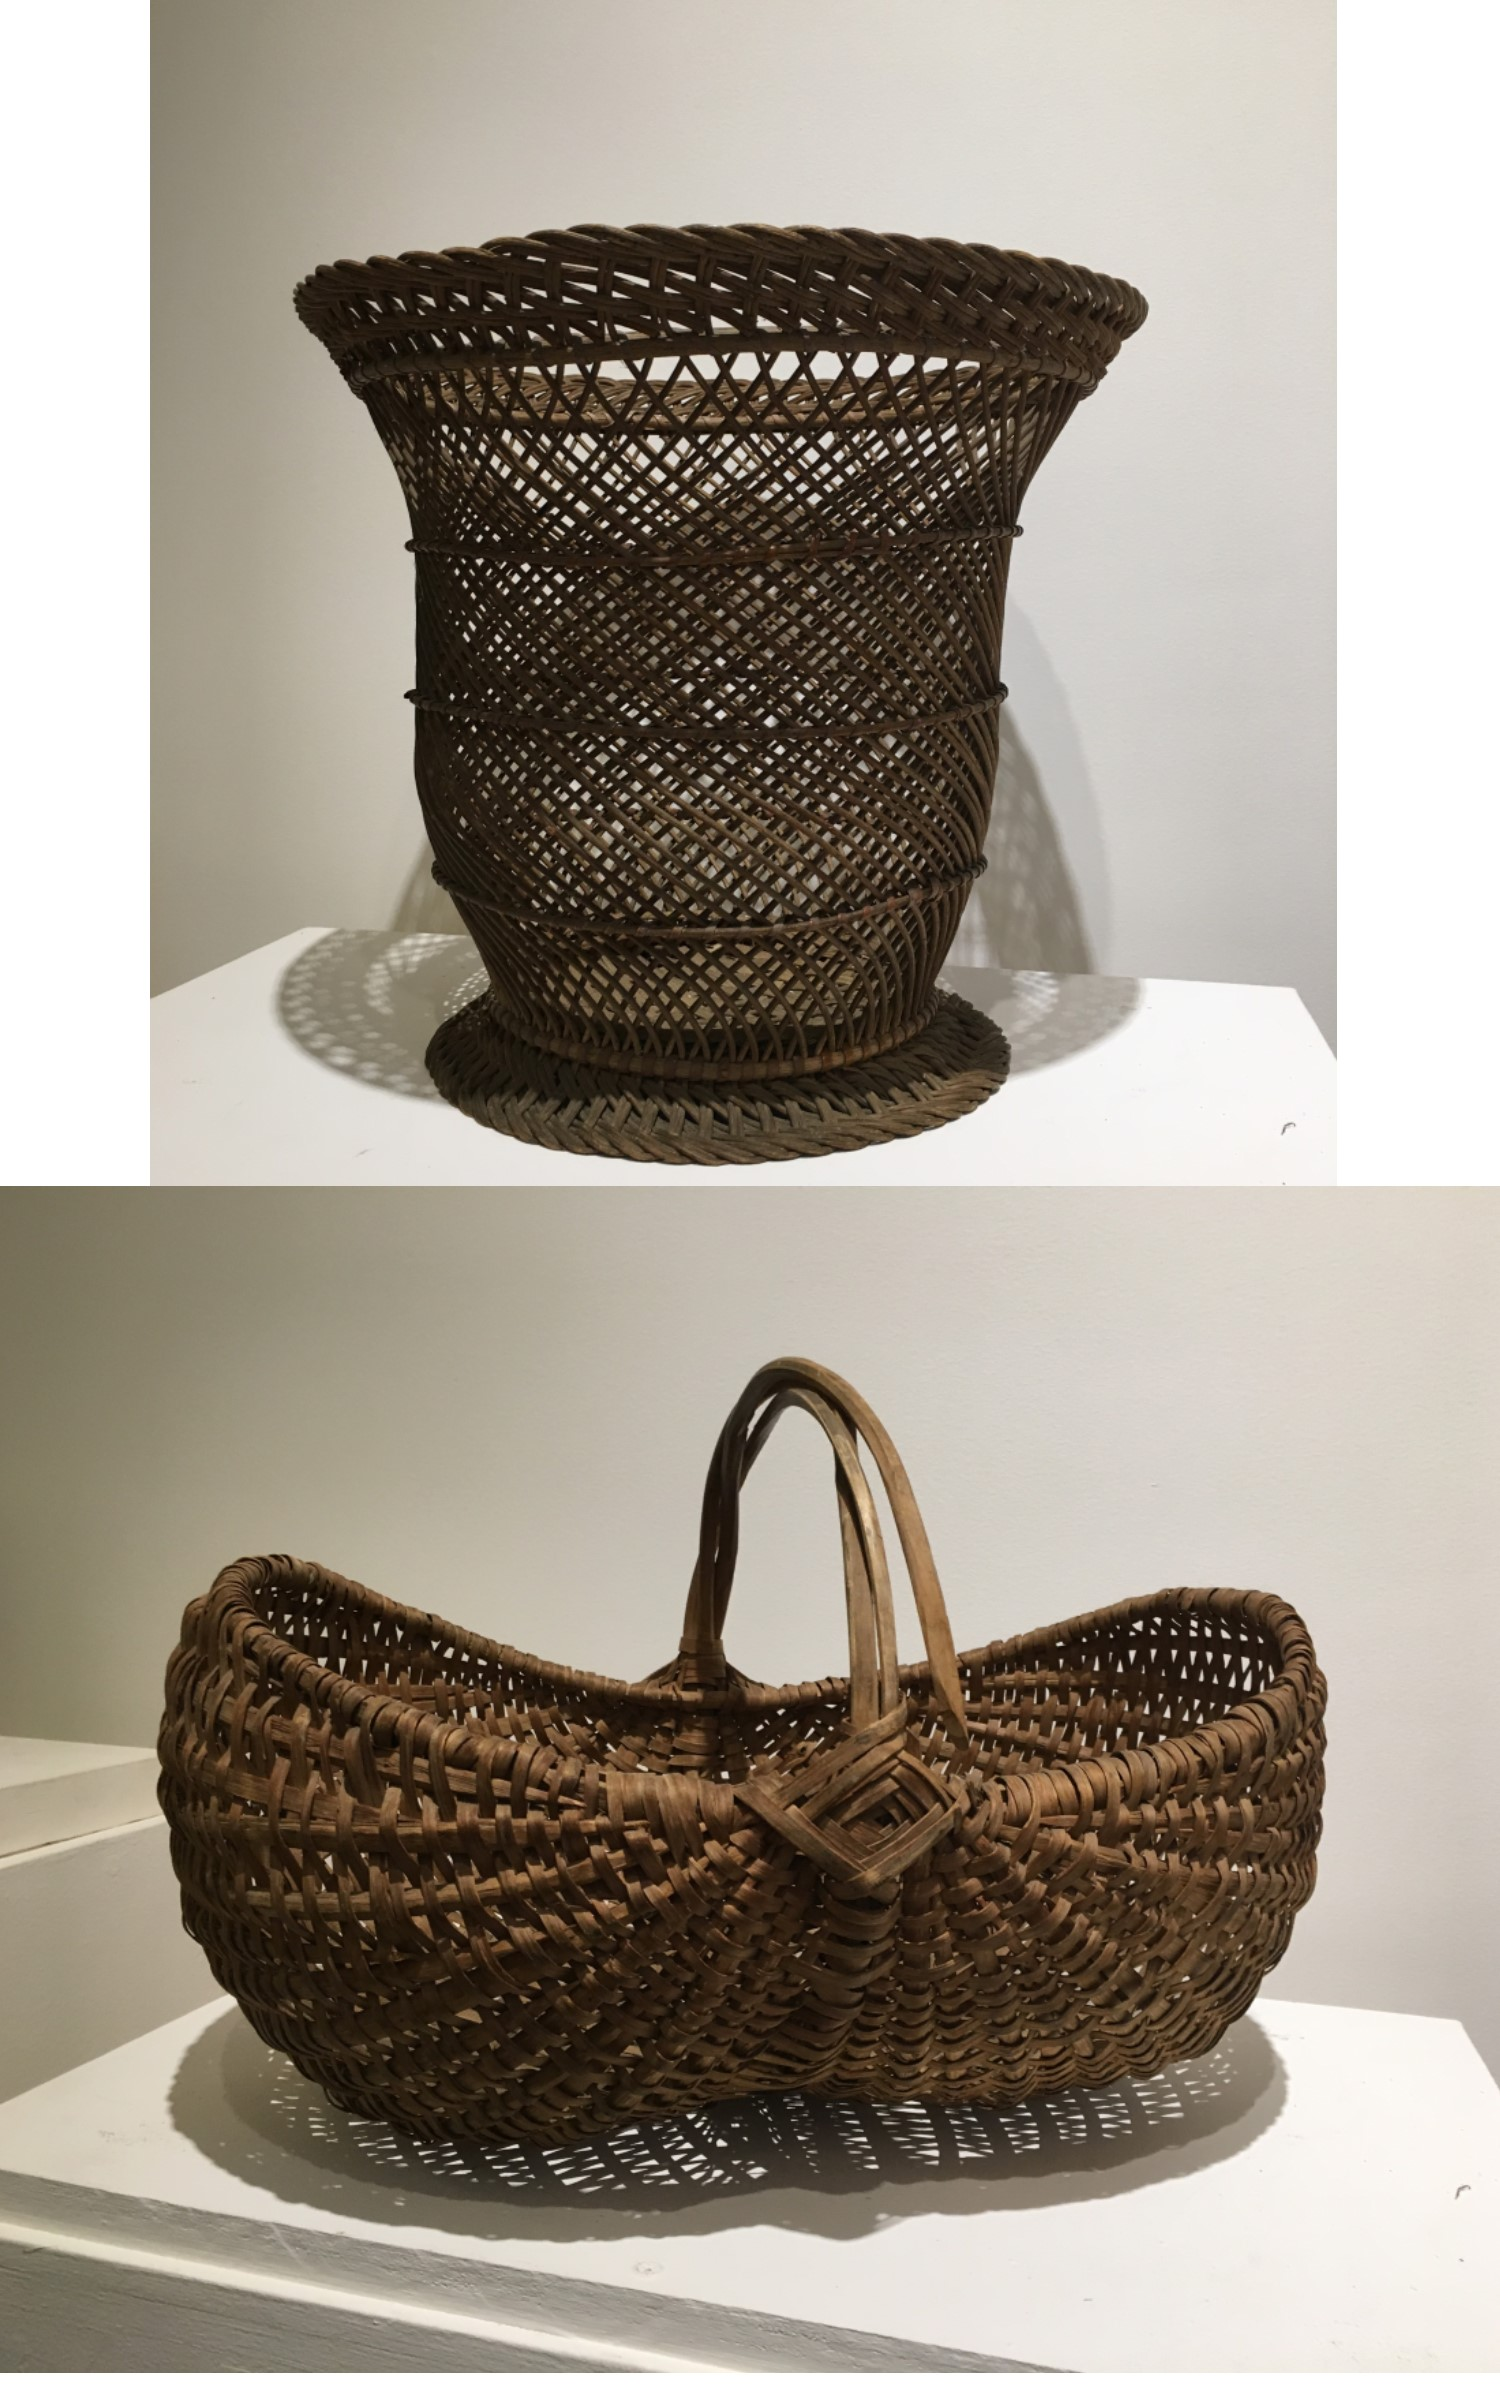 """<h3>WASTEPAPER BASKET</em></h3> <br> <p><strong>Wicker</strong></p> <p><strong>Ca. 1900</strong></p> <p><strong>Gift of George R. Latham</strong></p> <br> <p>This decorative open-weave wicker basket has been designed in an urn shape and was most likely used as a wastepaper basket. The weaving here is particularly skillful.</p> <br> <br> <hr> <br> <br> <h3>EGG BASKET</h3> <br> <p><strongFruitwood</strong></p> <p><strong>First half of the twentieth century</strong></p> <p><strong>Gift of Floyd King</strong></p> <br> <p>This type of woven basket is called a """"ribbed"""" basket. This example is in the classic shape of an egg basket, although there are variations. This particular type is """"melon-shaped."""" An egg basket with a more pronounced shape is known as a """"butt"""" or """"buttocks"""" basket. In basket making the diamond shape where the handle and rim intersect, as seen here, is known as a """"God's Eye.""""</p>"""